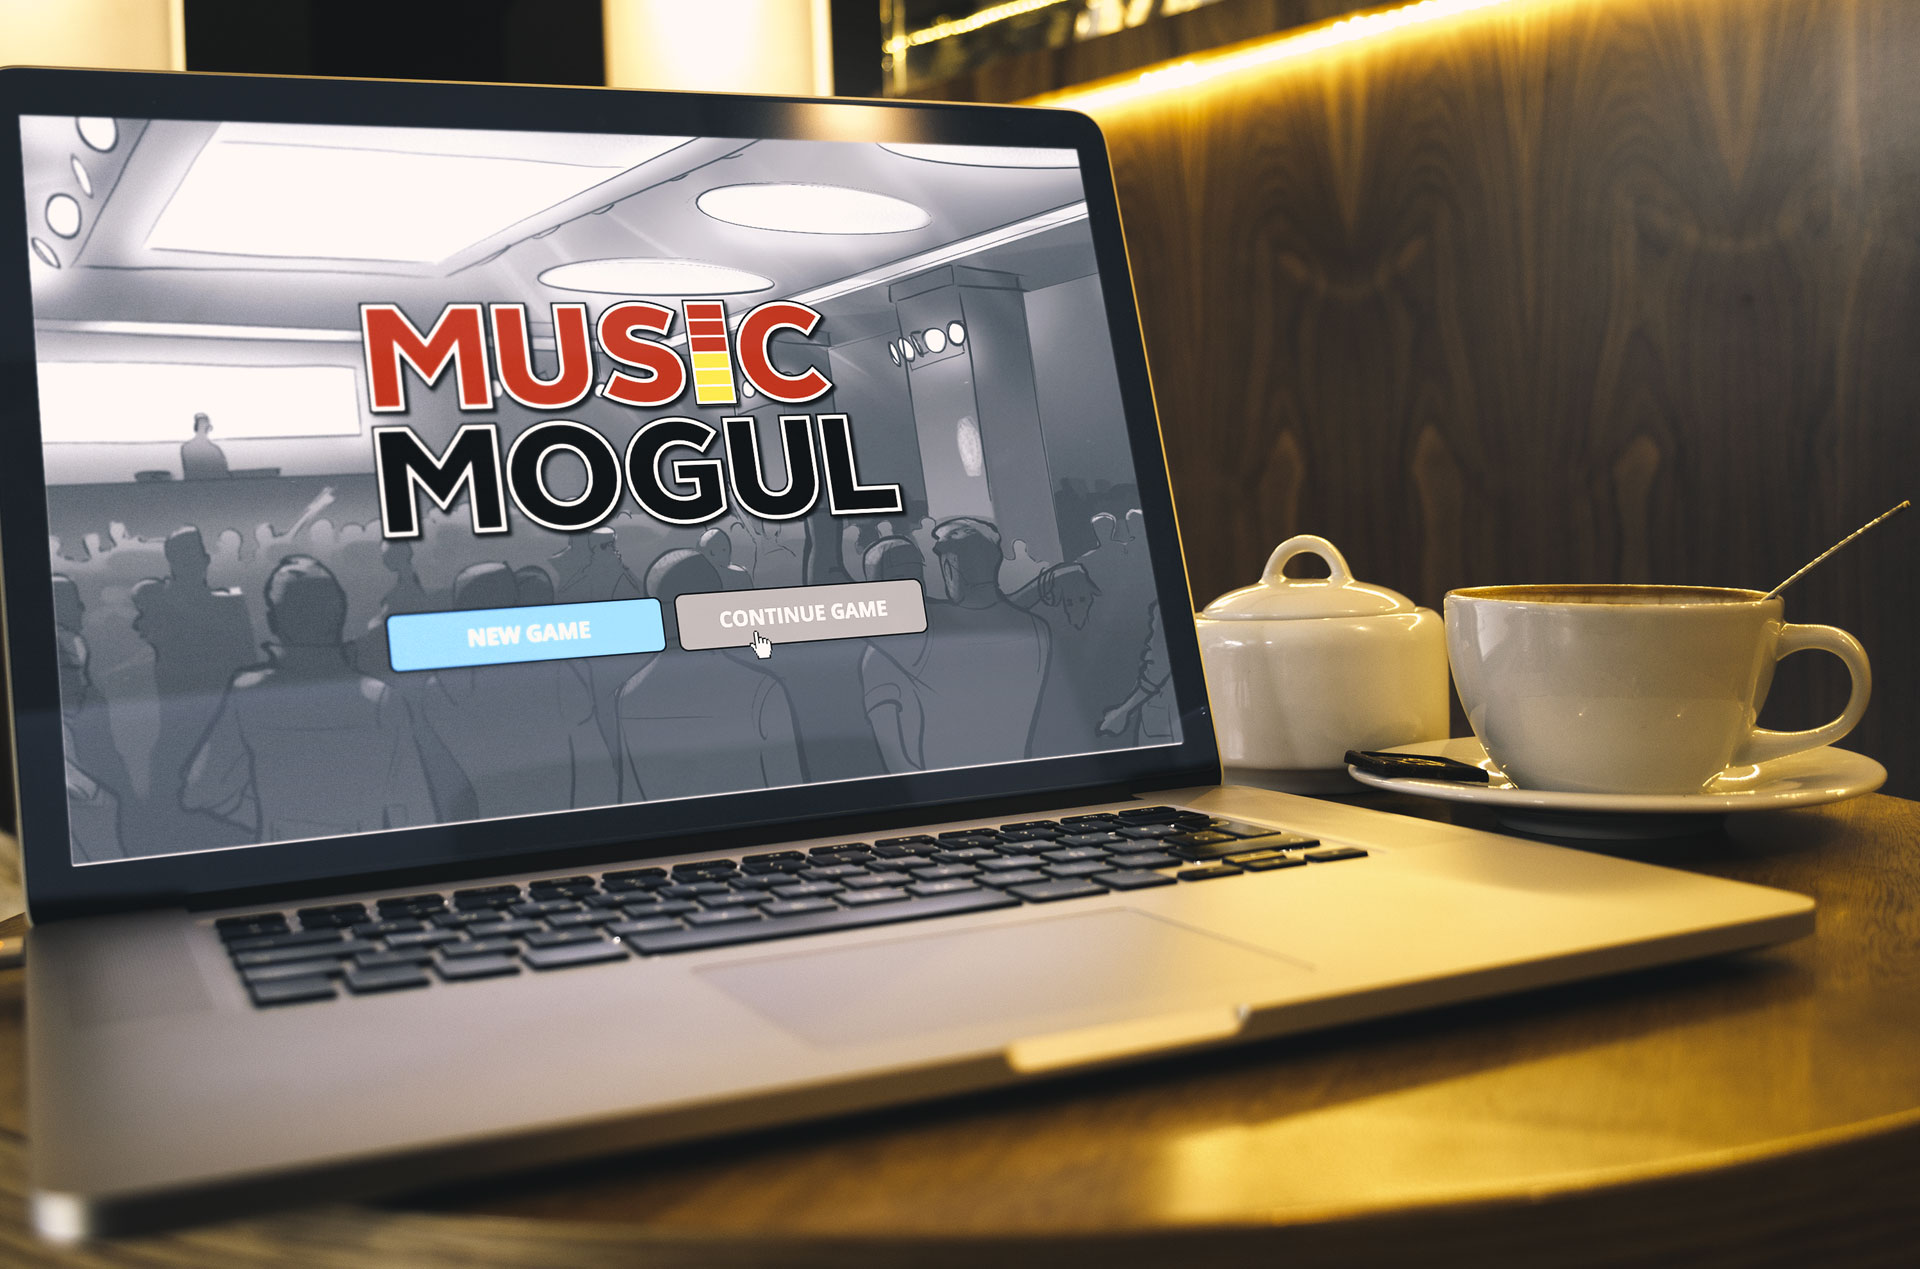 Music Mogul web advertisement